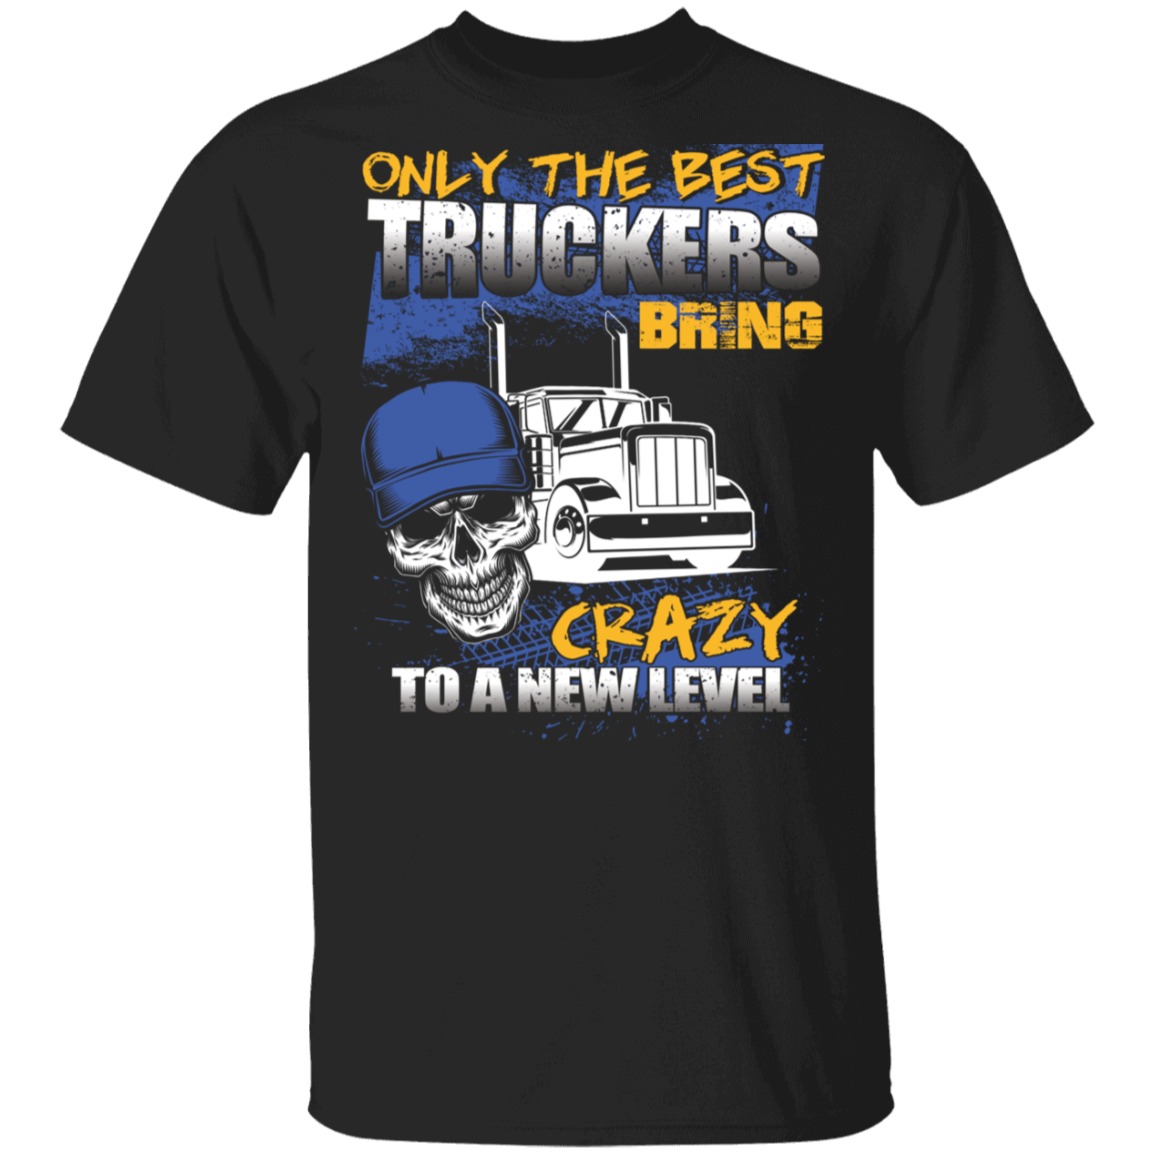 Only The Best Truckers Bring Crazy To A New Level T-Shirt Funny Skull Trucker Shirt For Men